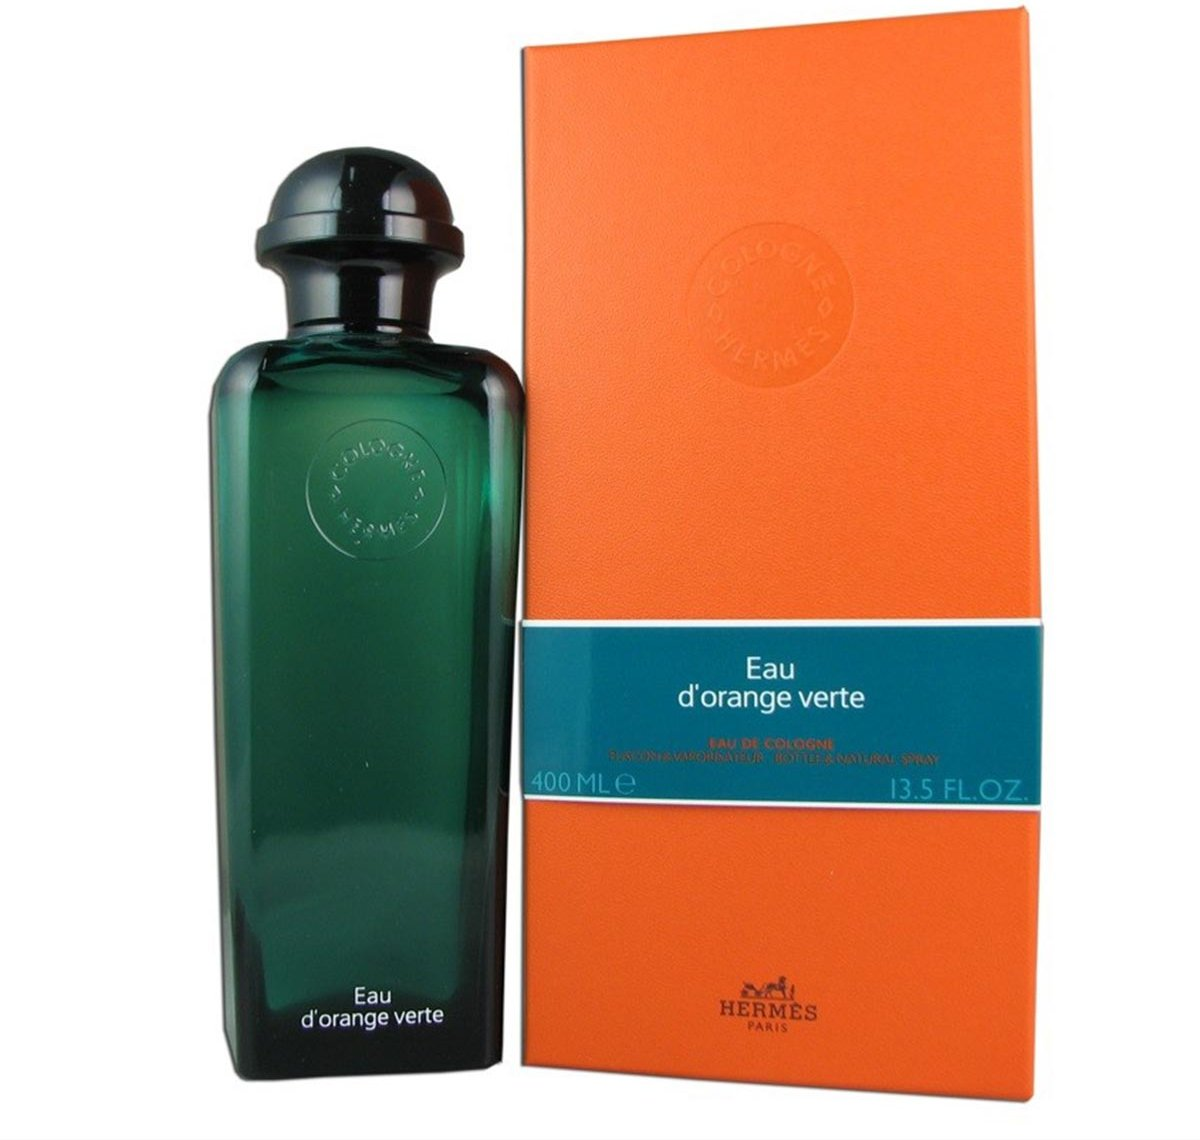 MULTI BUNDEL 3 stuks Hermes Eau Dorange Verte Eau De Cologne Spray 50ml